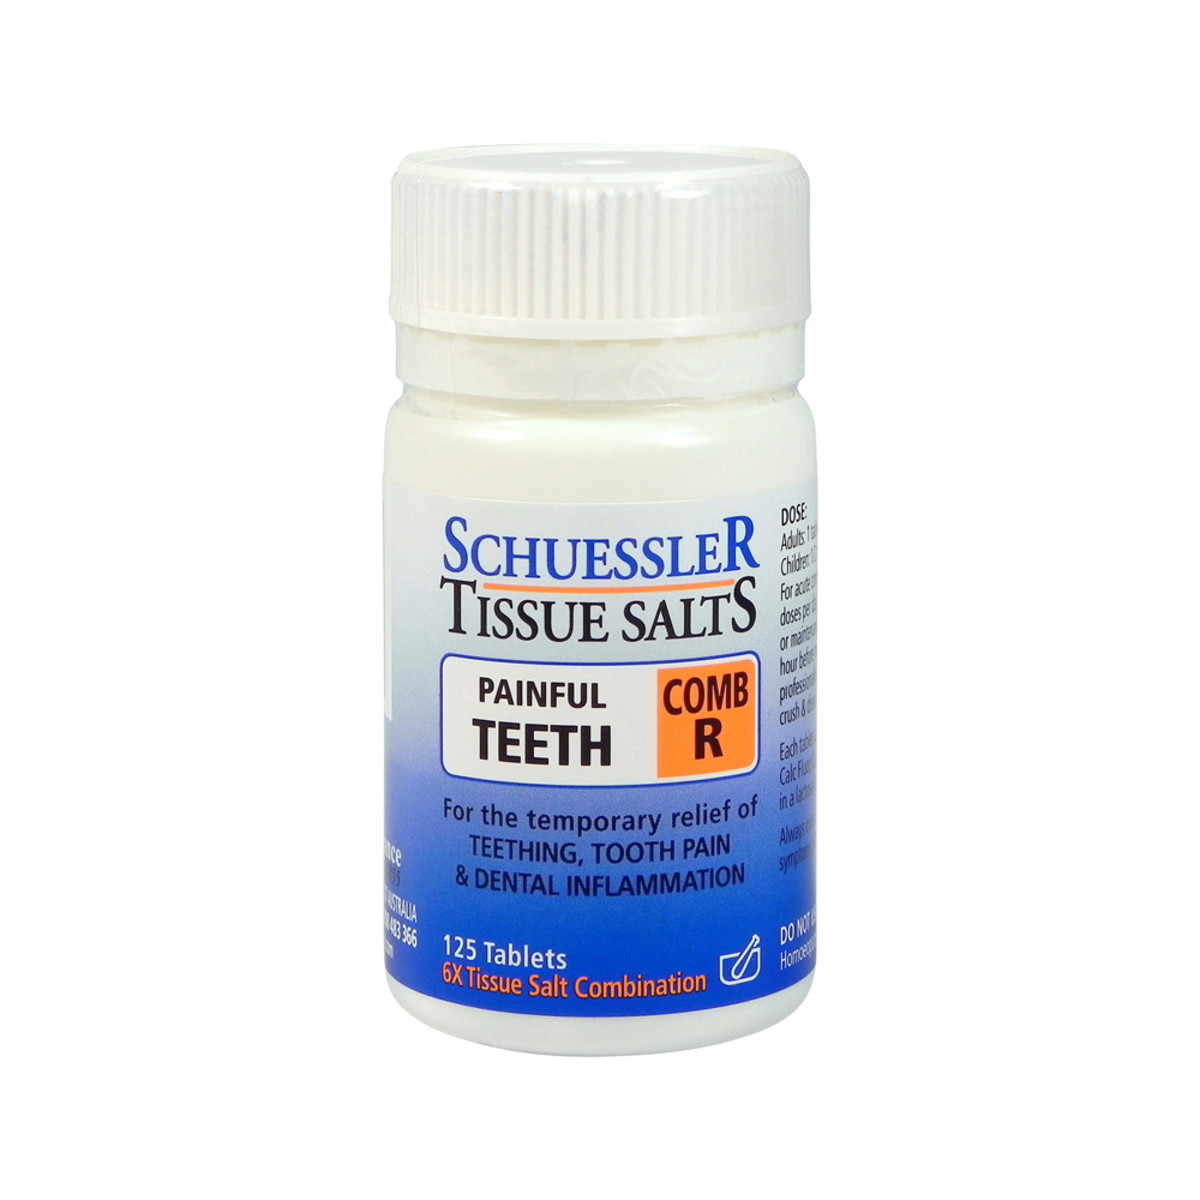 Schuessler Tissue Salts Comb R (Painful Teeth) 125t